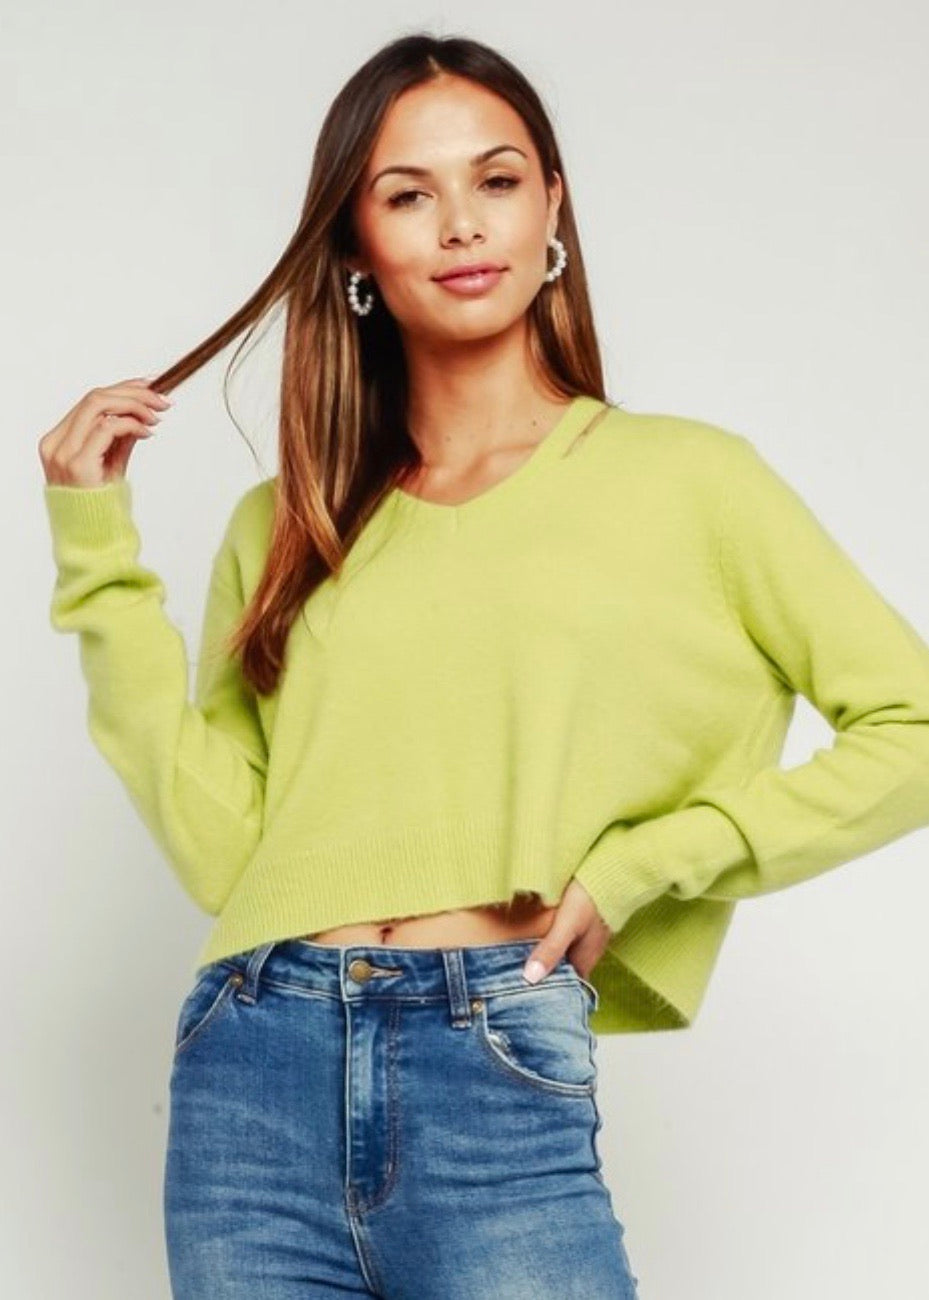 Keylime Sweater